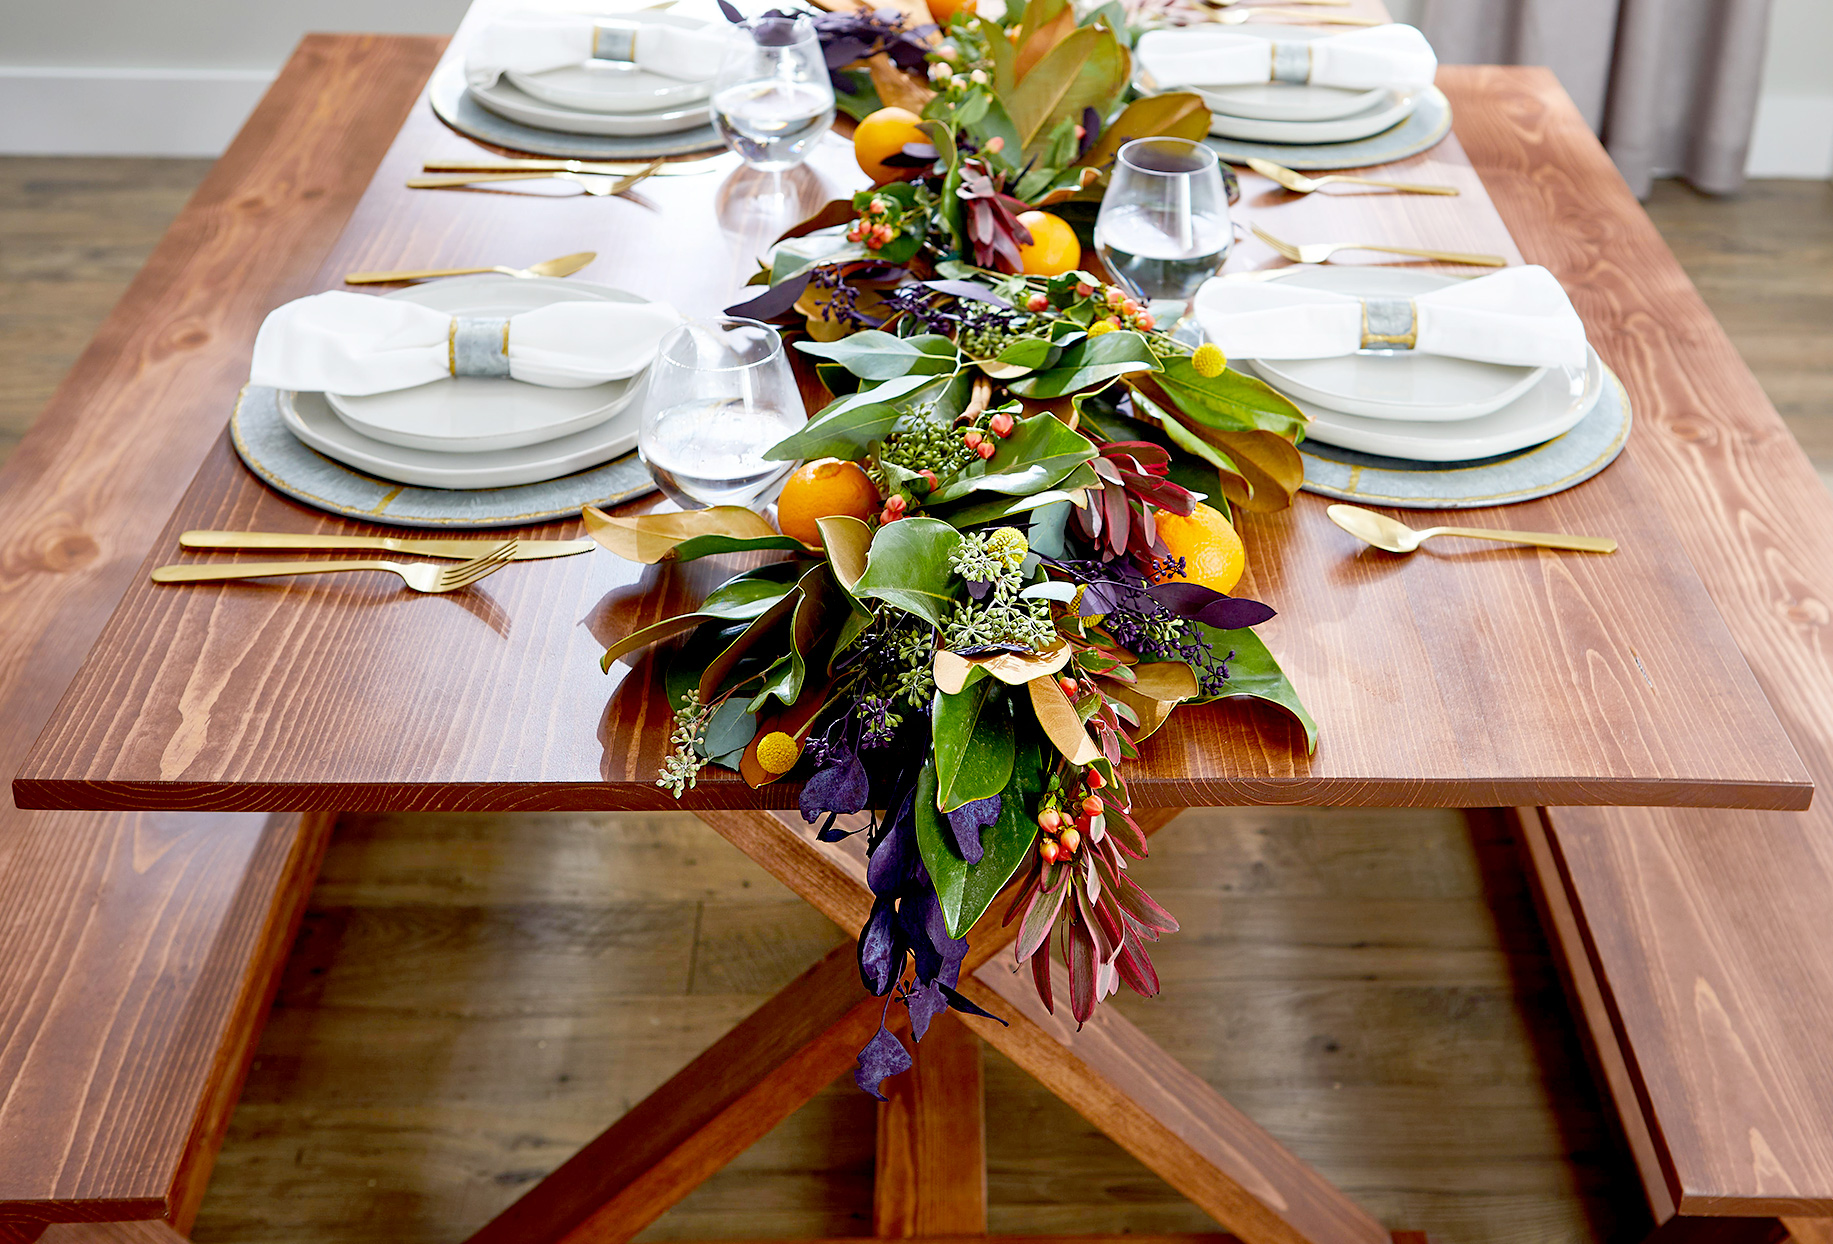 Dining table with runner made of plants and oranges